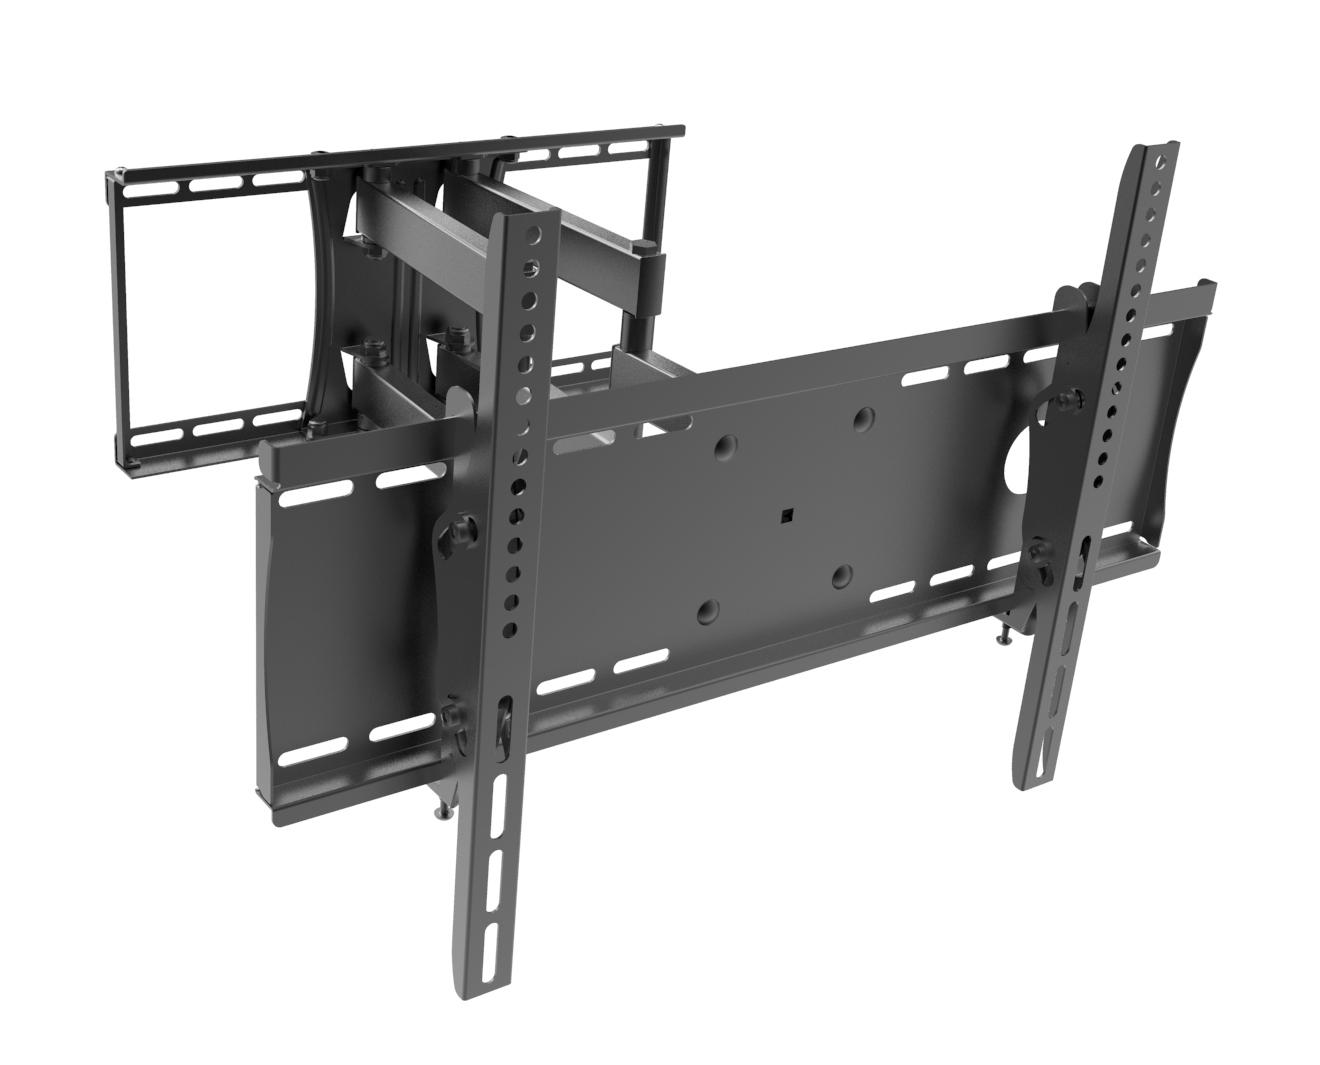 The TV Shield Full Motion Wall Mount